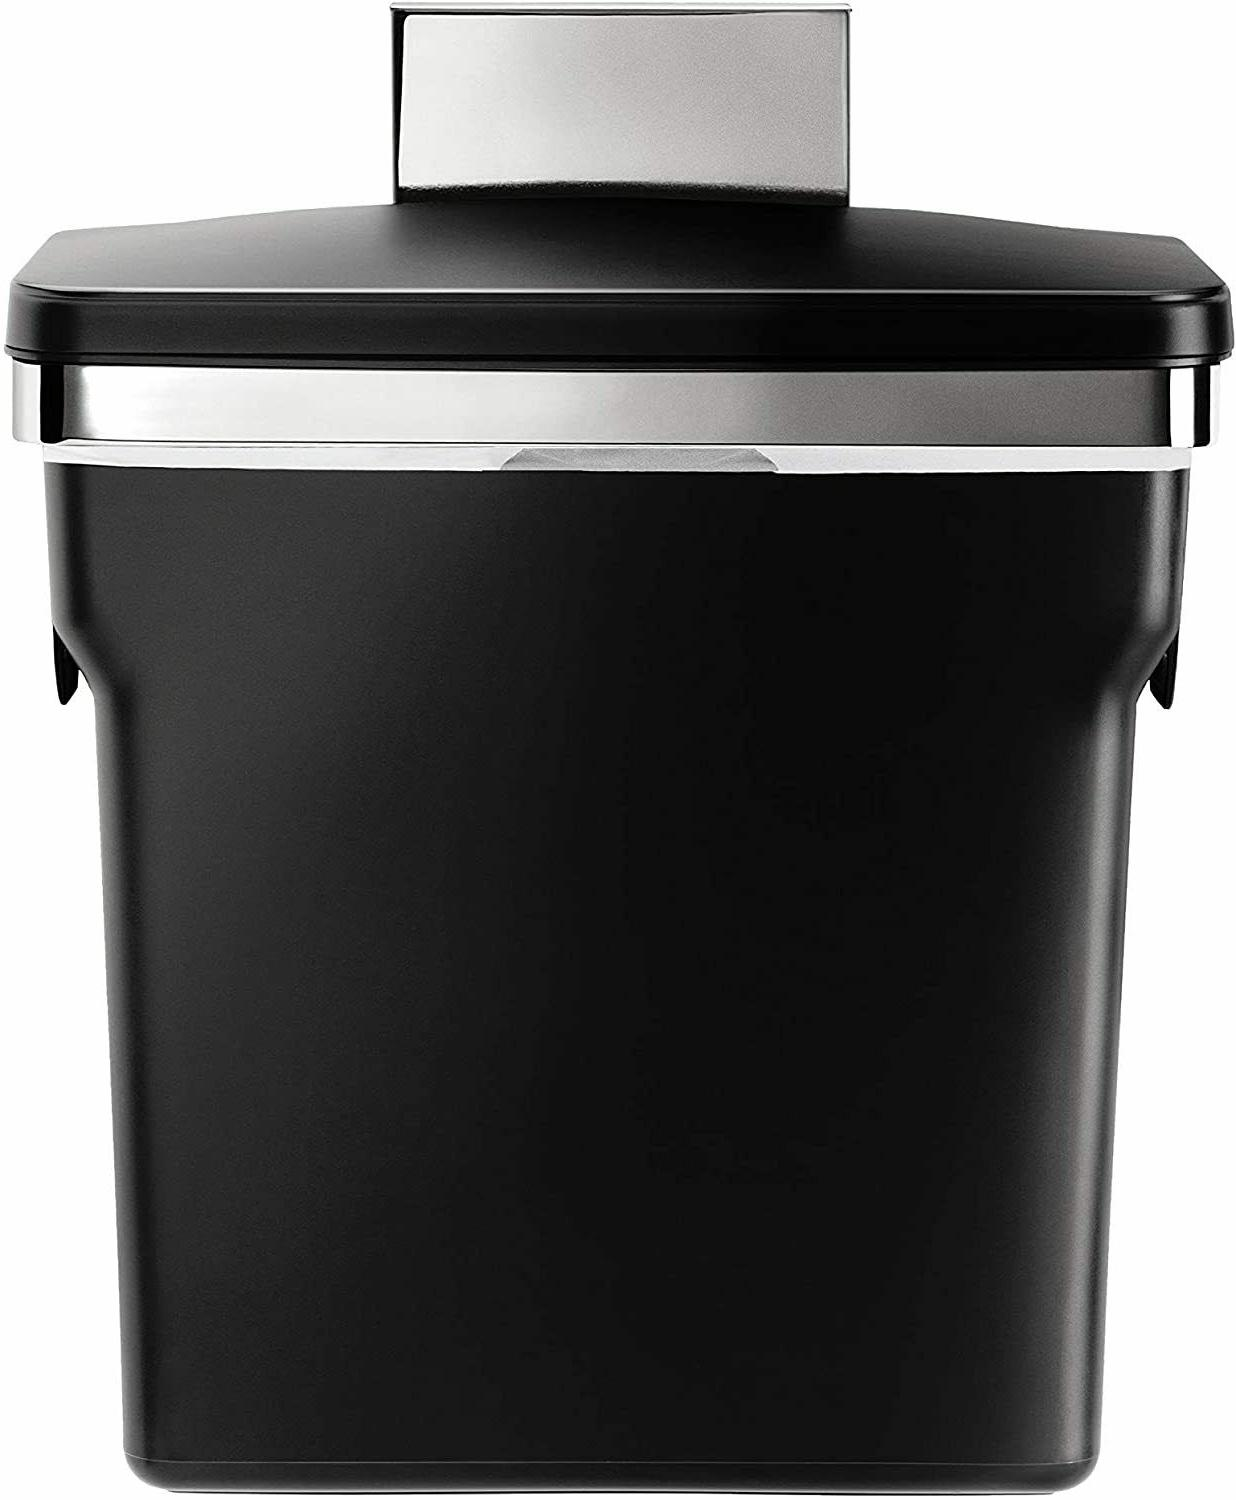 simplehuman 10 Liter / 2.6 Gallon In-Cabinet Kitchen Trash C